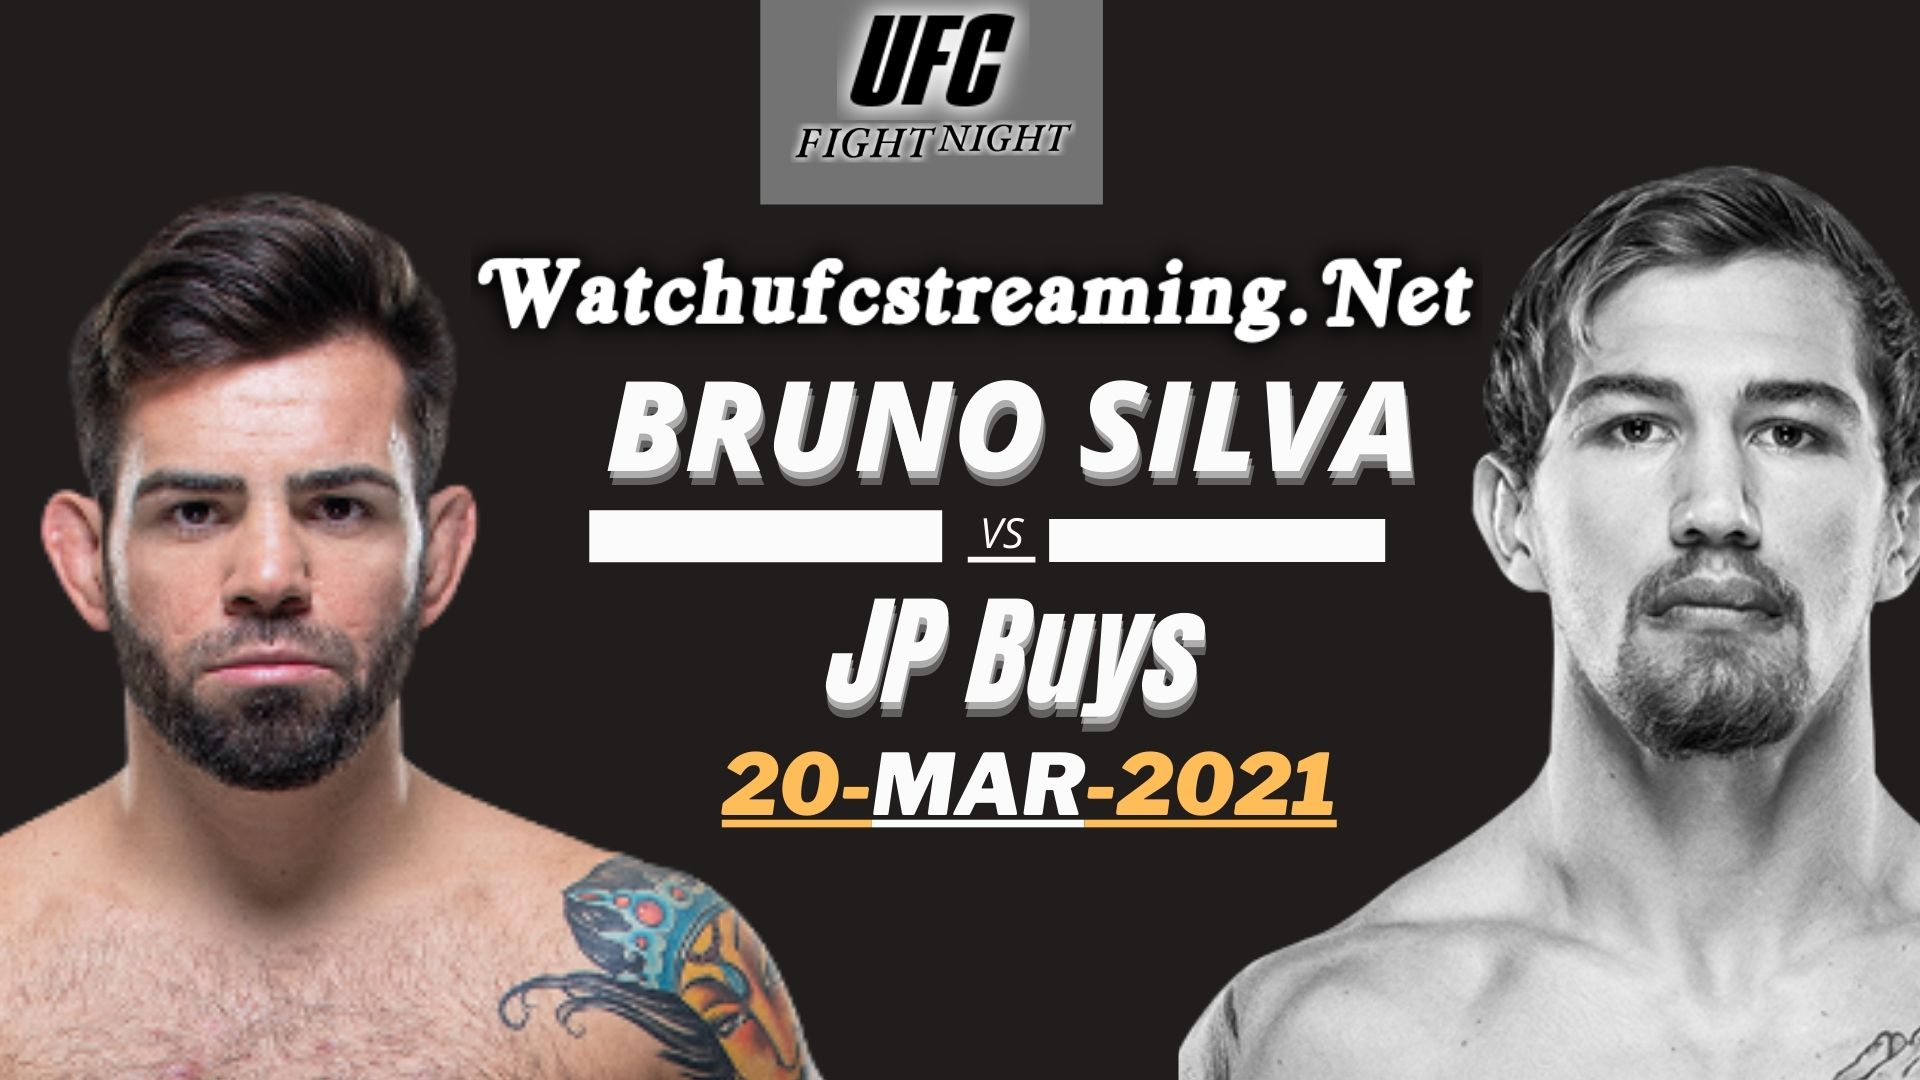 Bruno Silva Vs JP Buys Highlights 2021